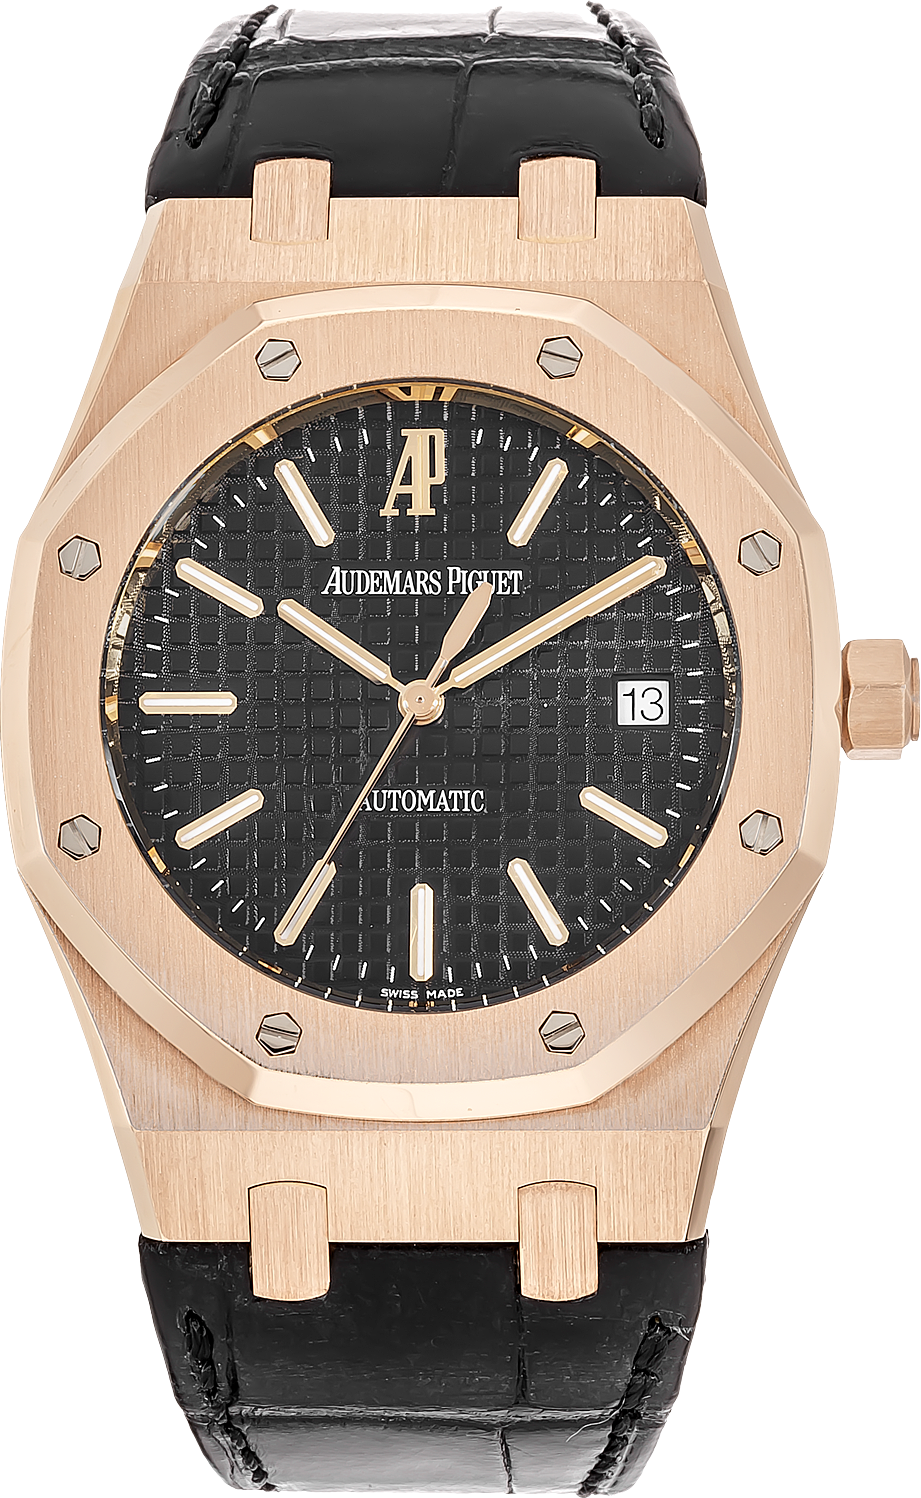 Audemars Piguet Royal Oak 15300OR.OO.D002CR.01